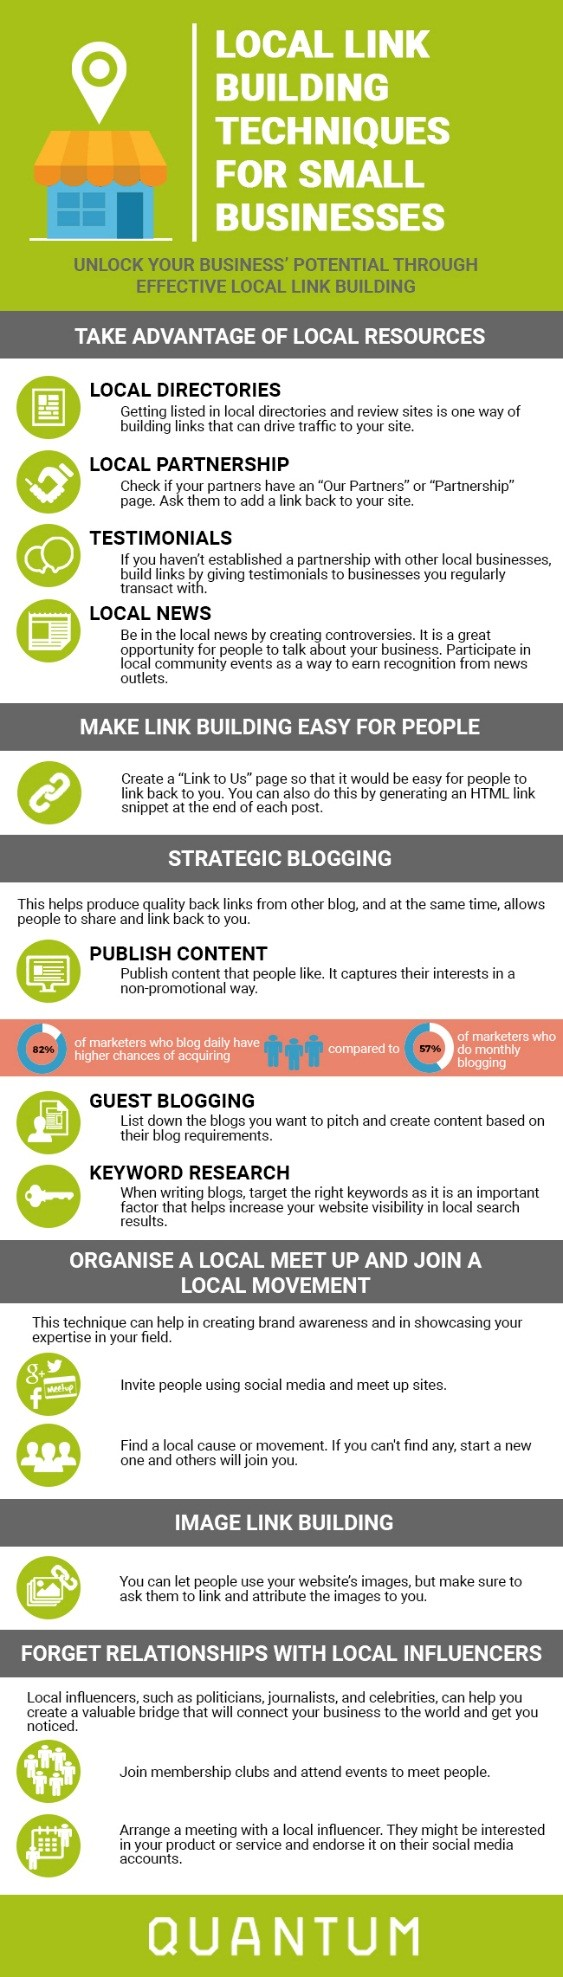 6 Simple Local SEO Link Building Strategies for Small Businesses